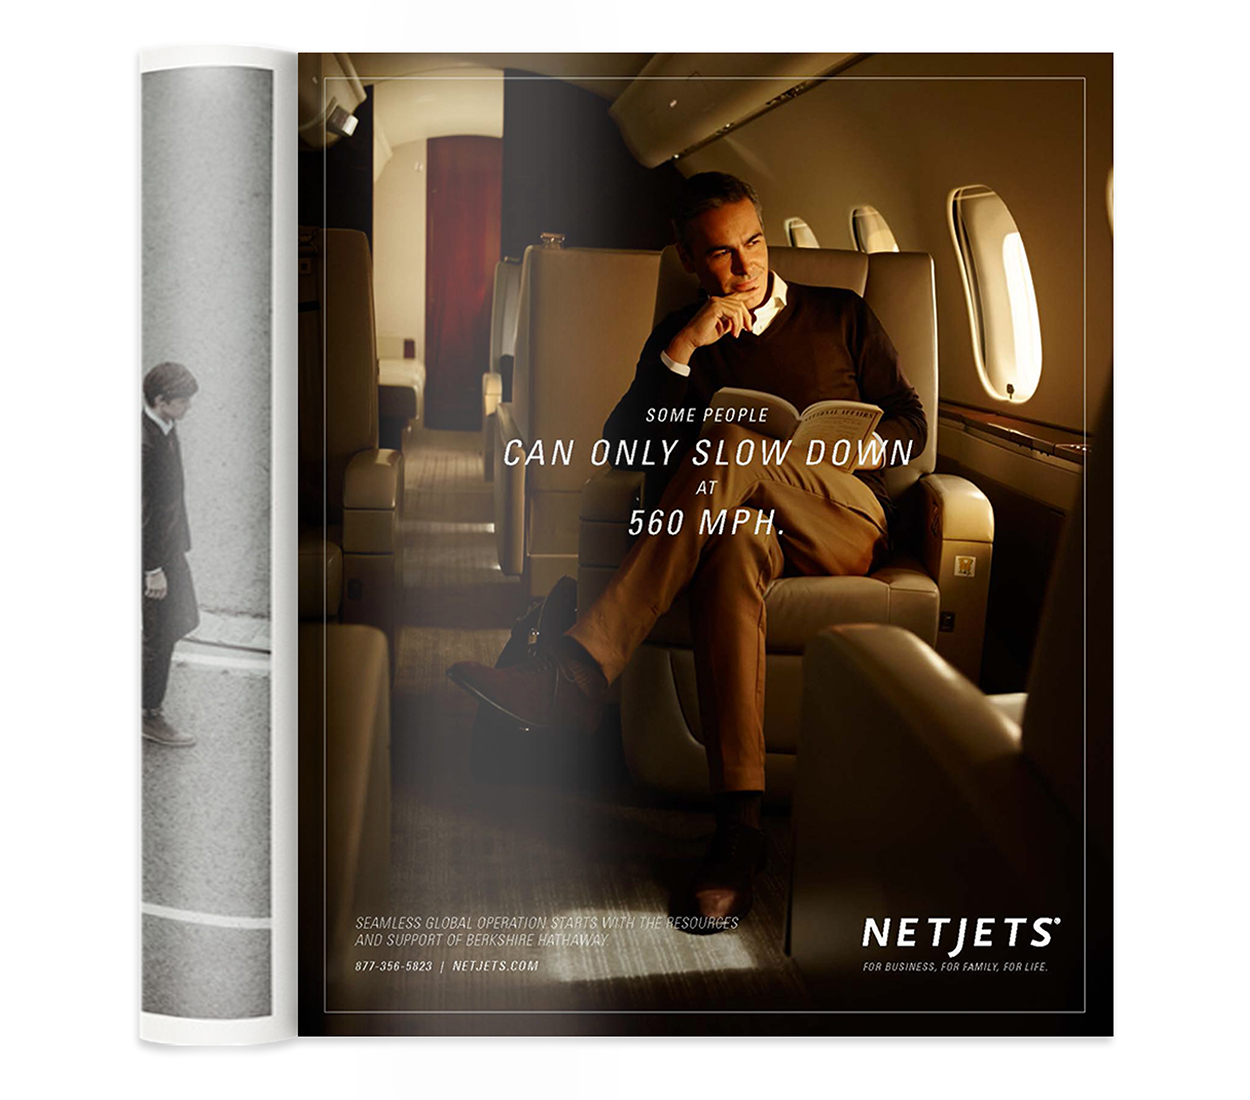 NetJets_Ads1re_150dpi.jpg